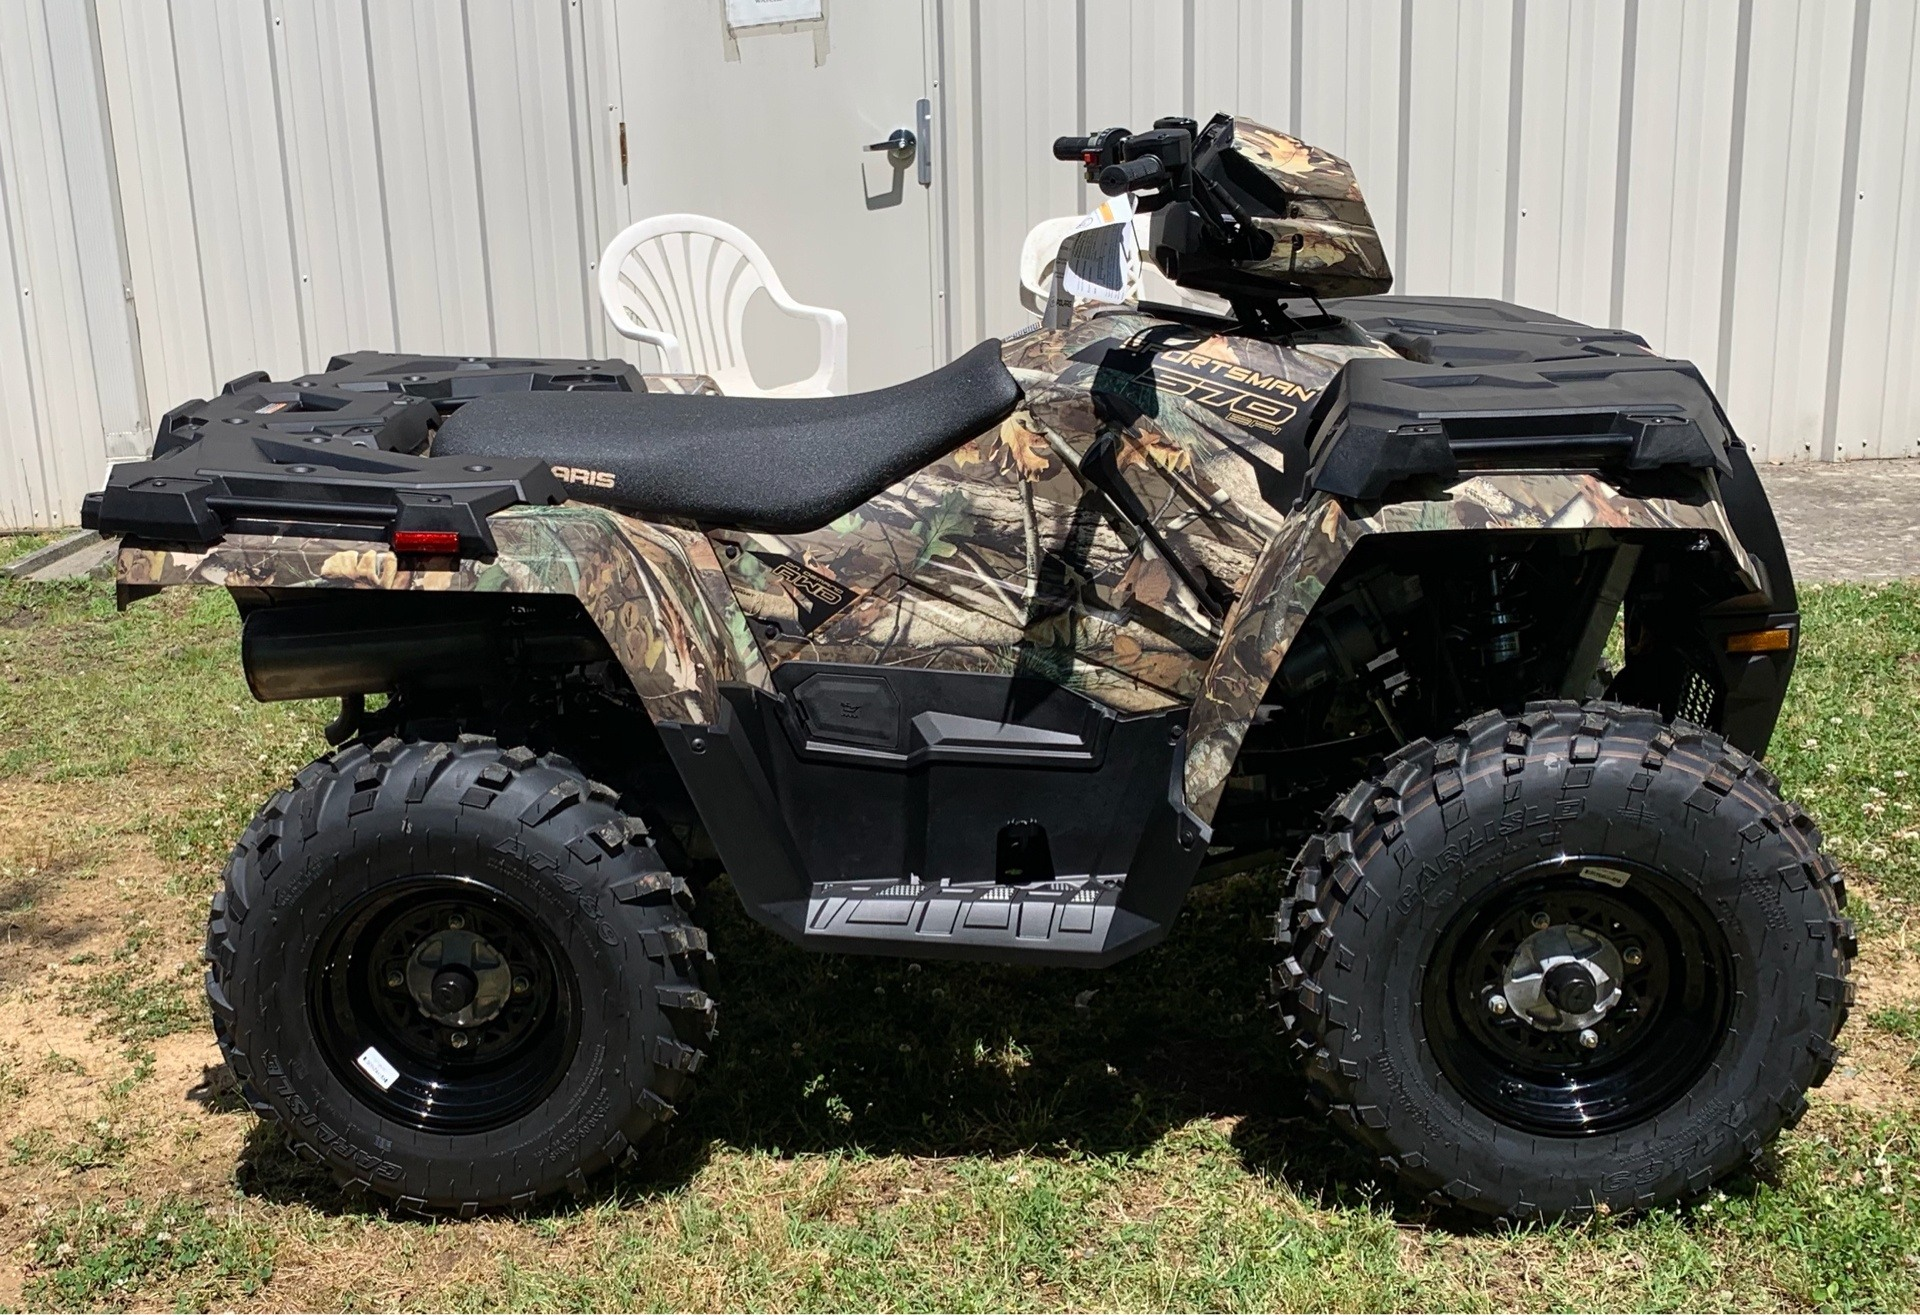 2019 Polaris Sportsman 570 EPS Camo in High Point, North Carolina - Photo 4